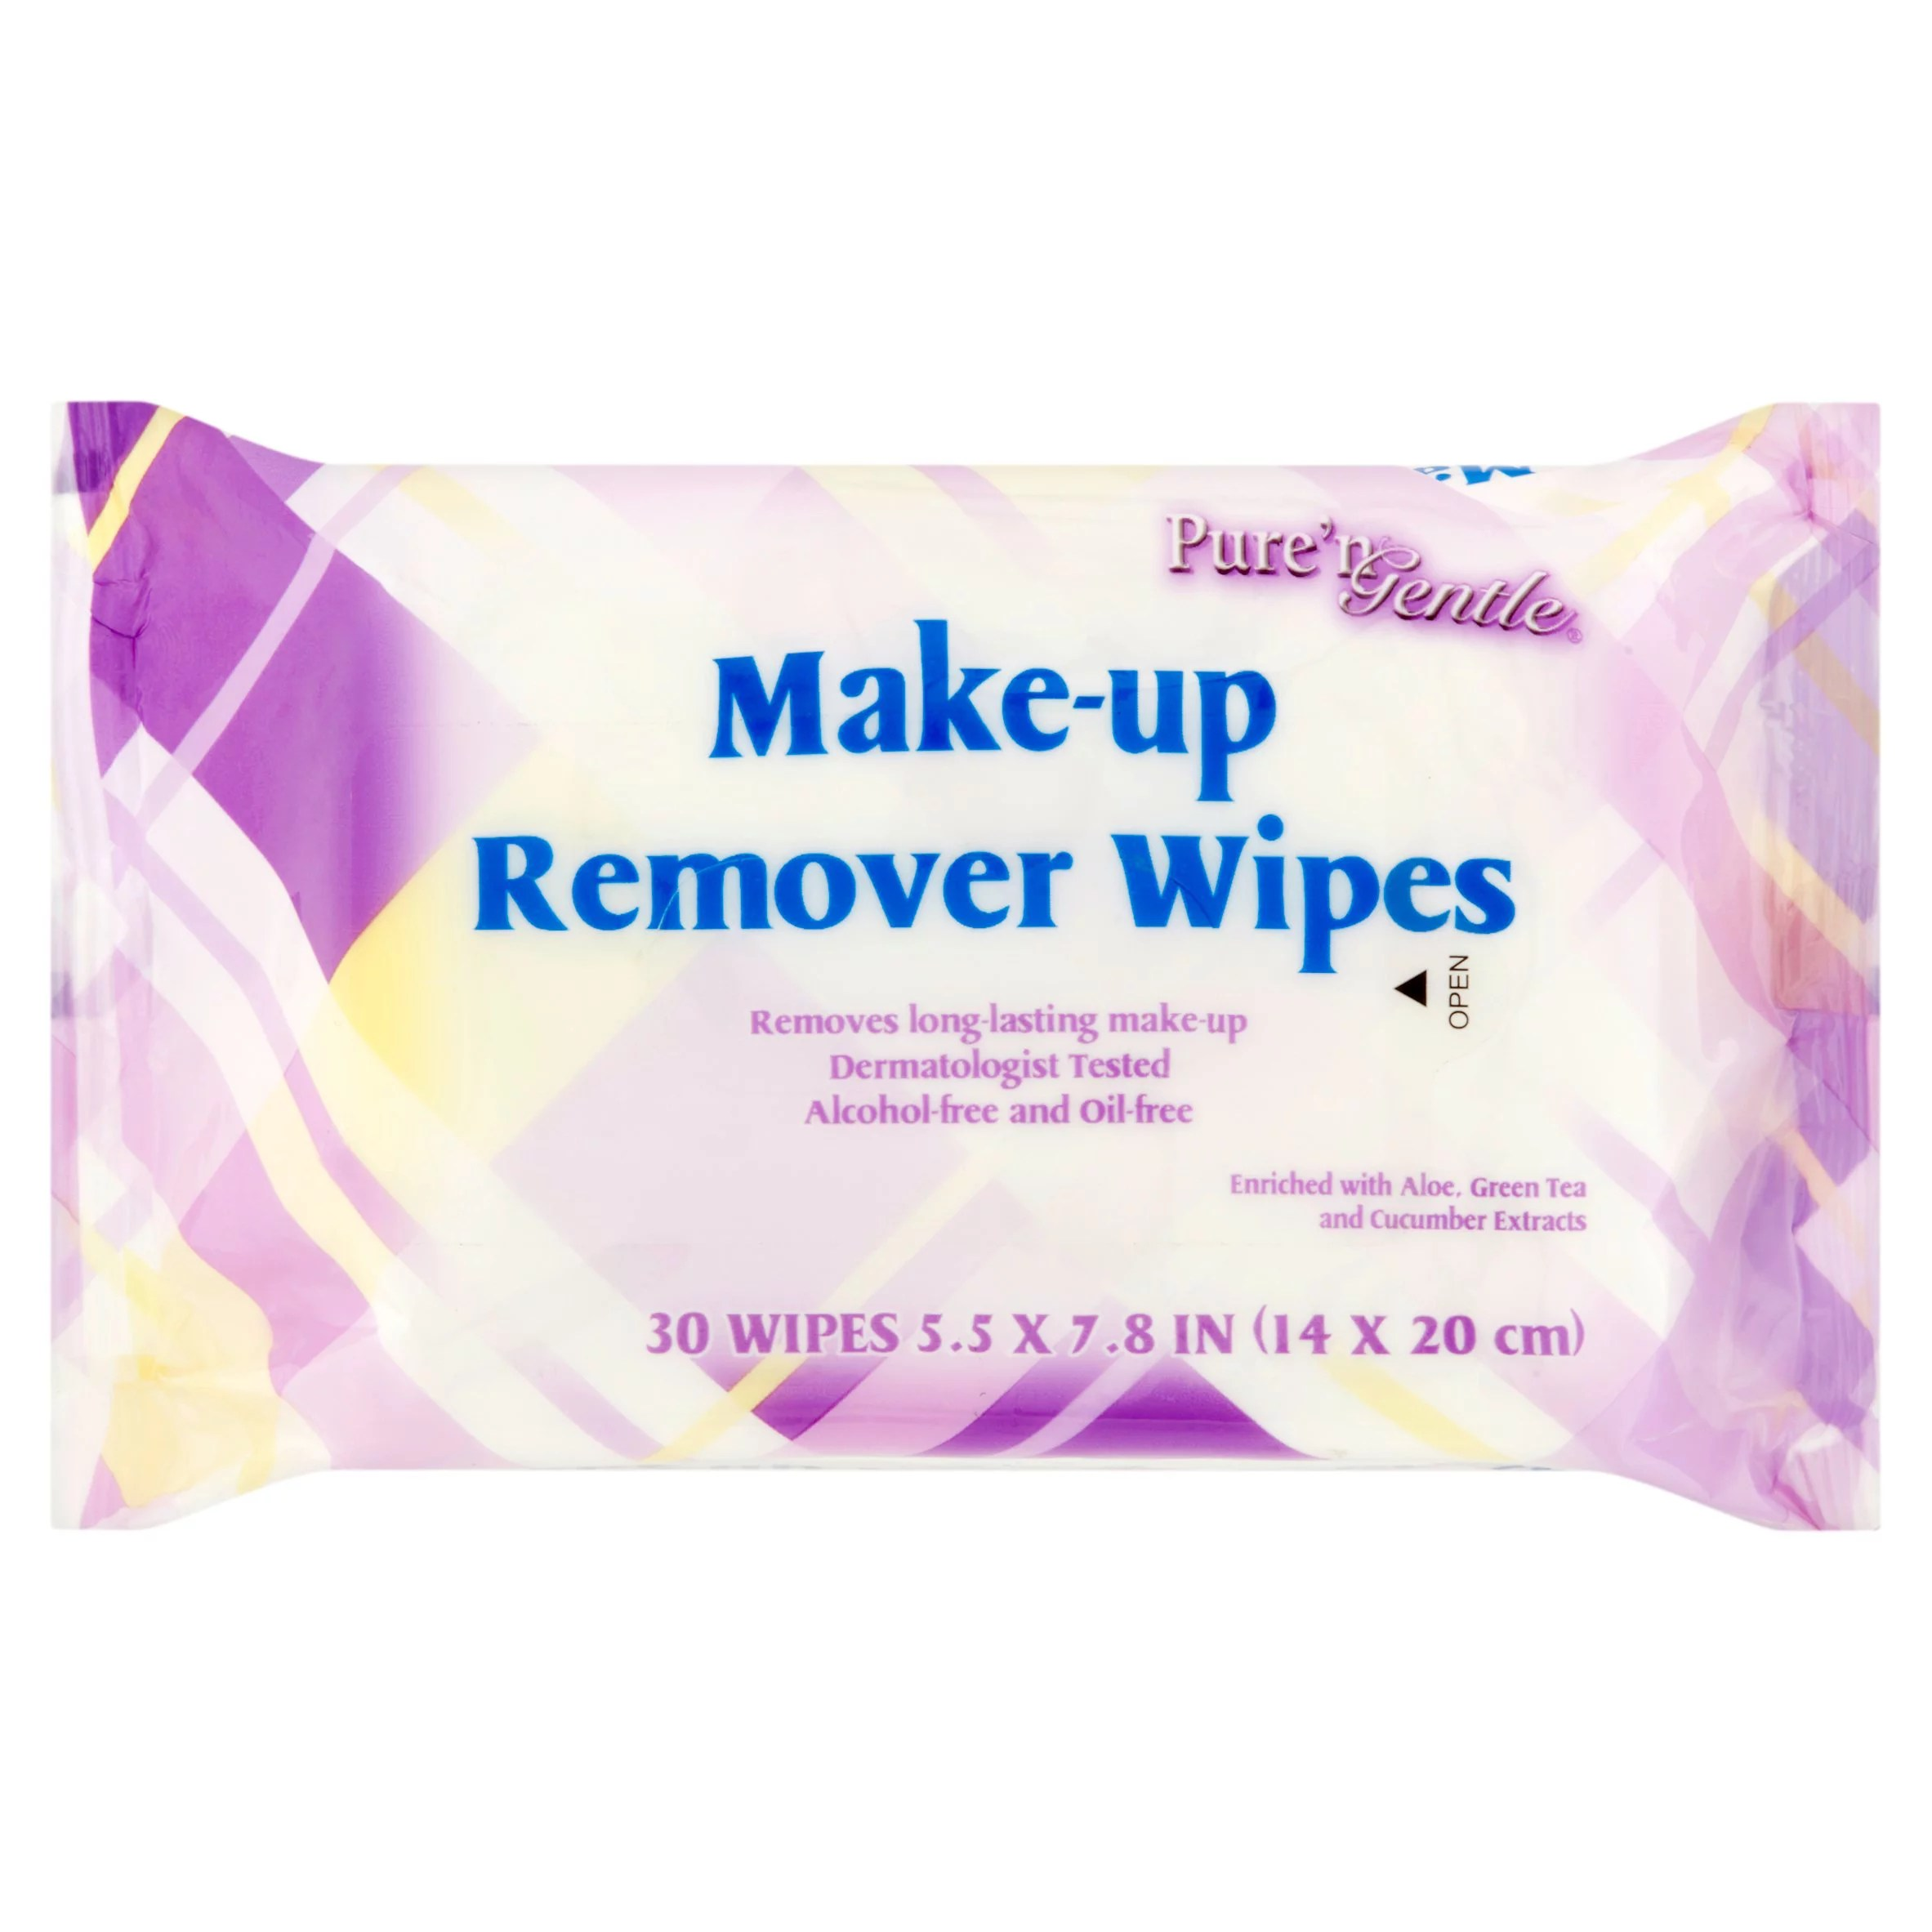 Puren Gentle Make Up Remover Wipes 30 Sheets